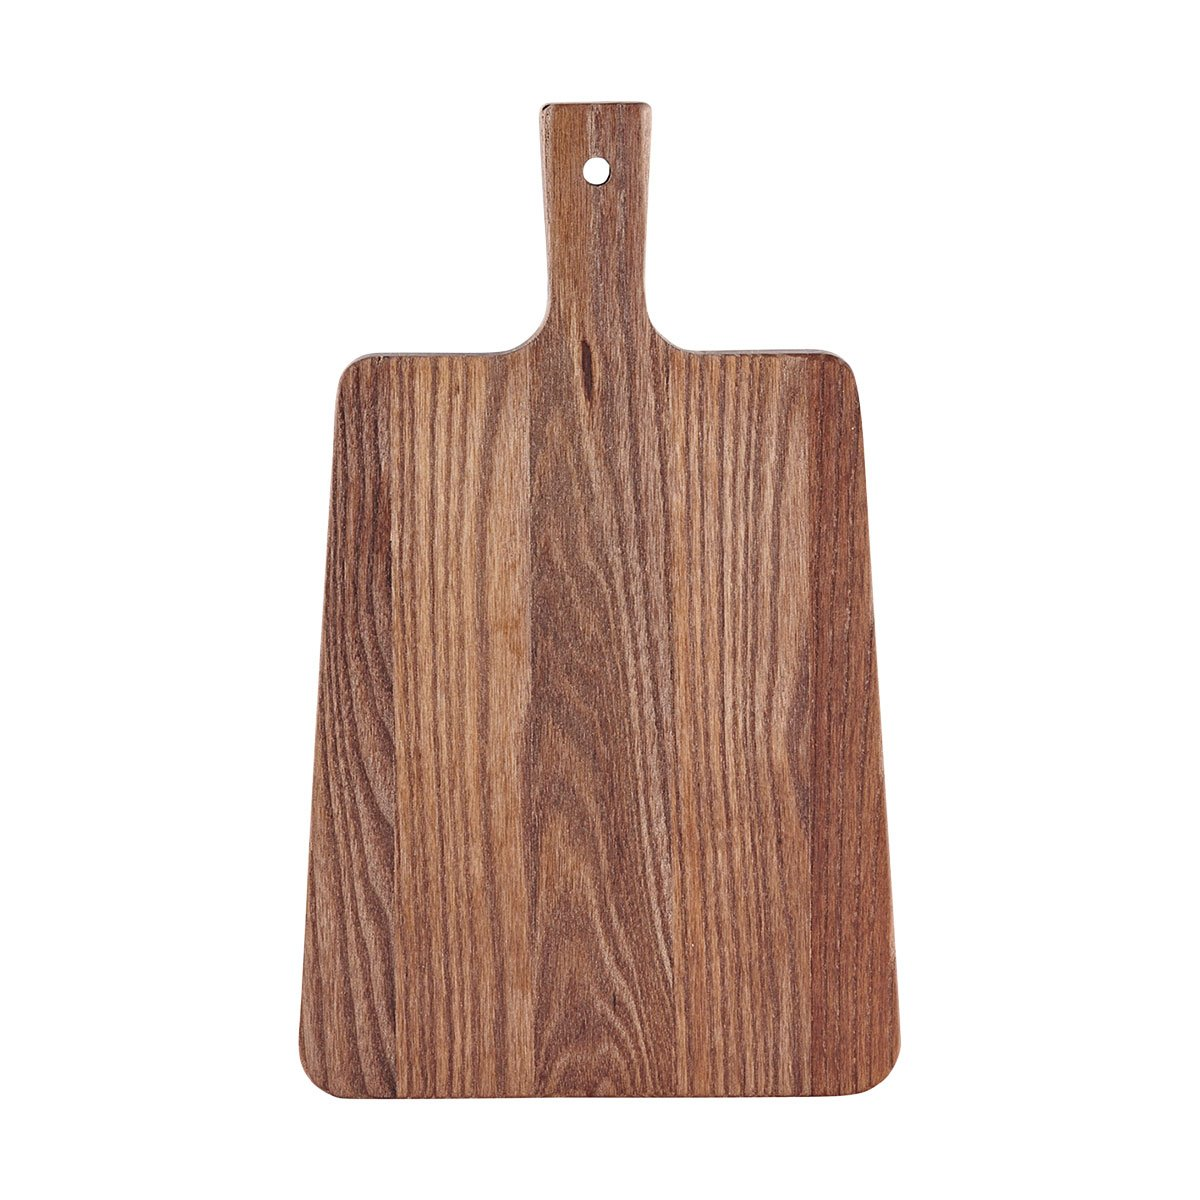 House Doctor - Cutting Board 22 x 35 cm (NW0113)